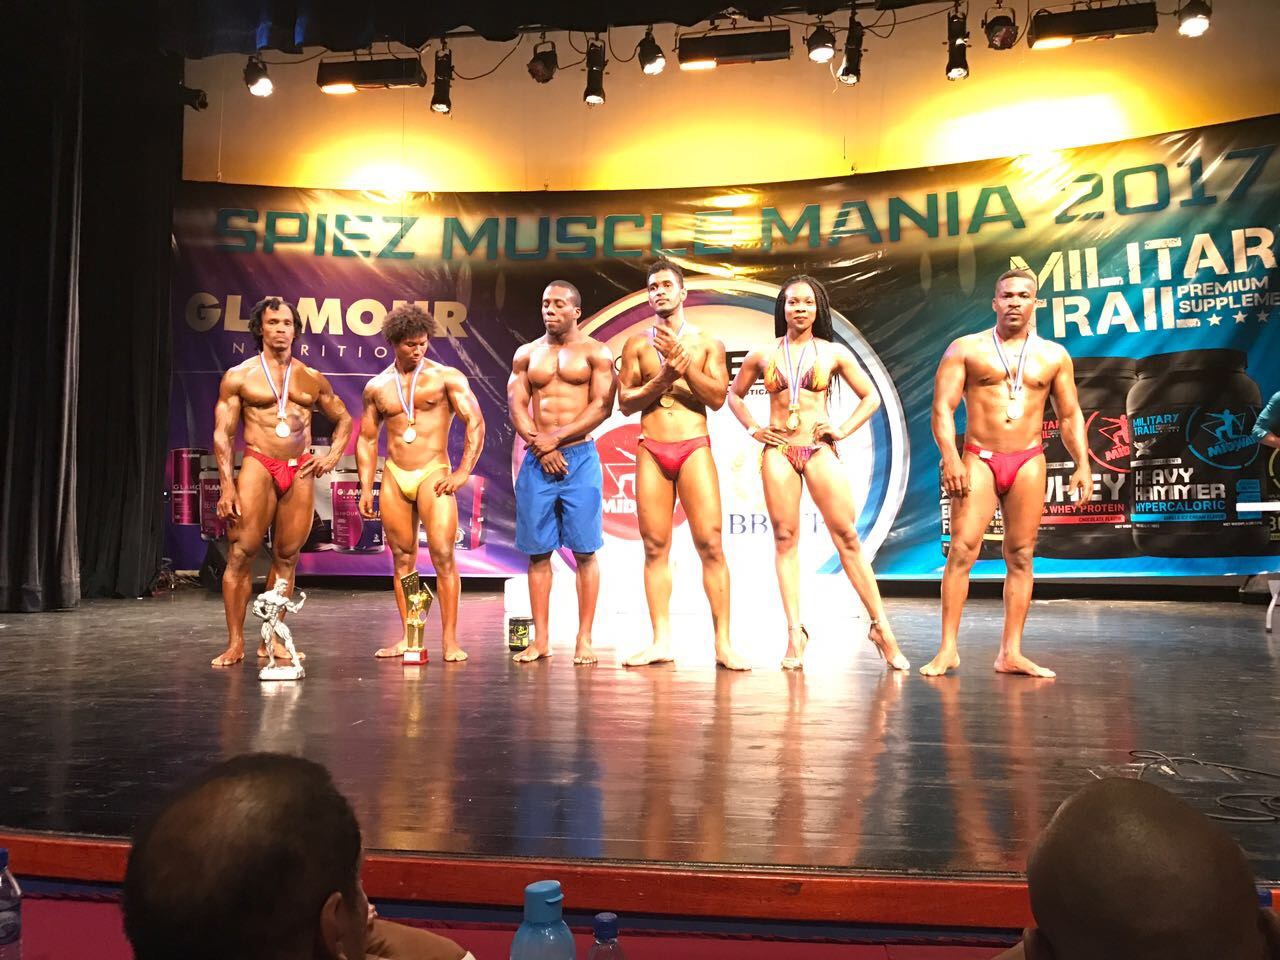 BBBFF Belize Body Building & Fitness Federation